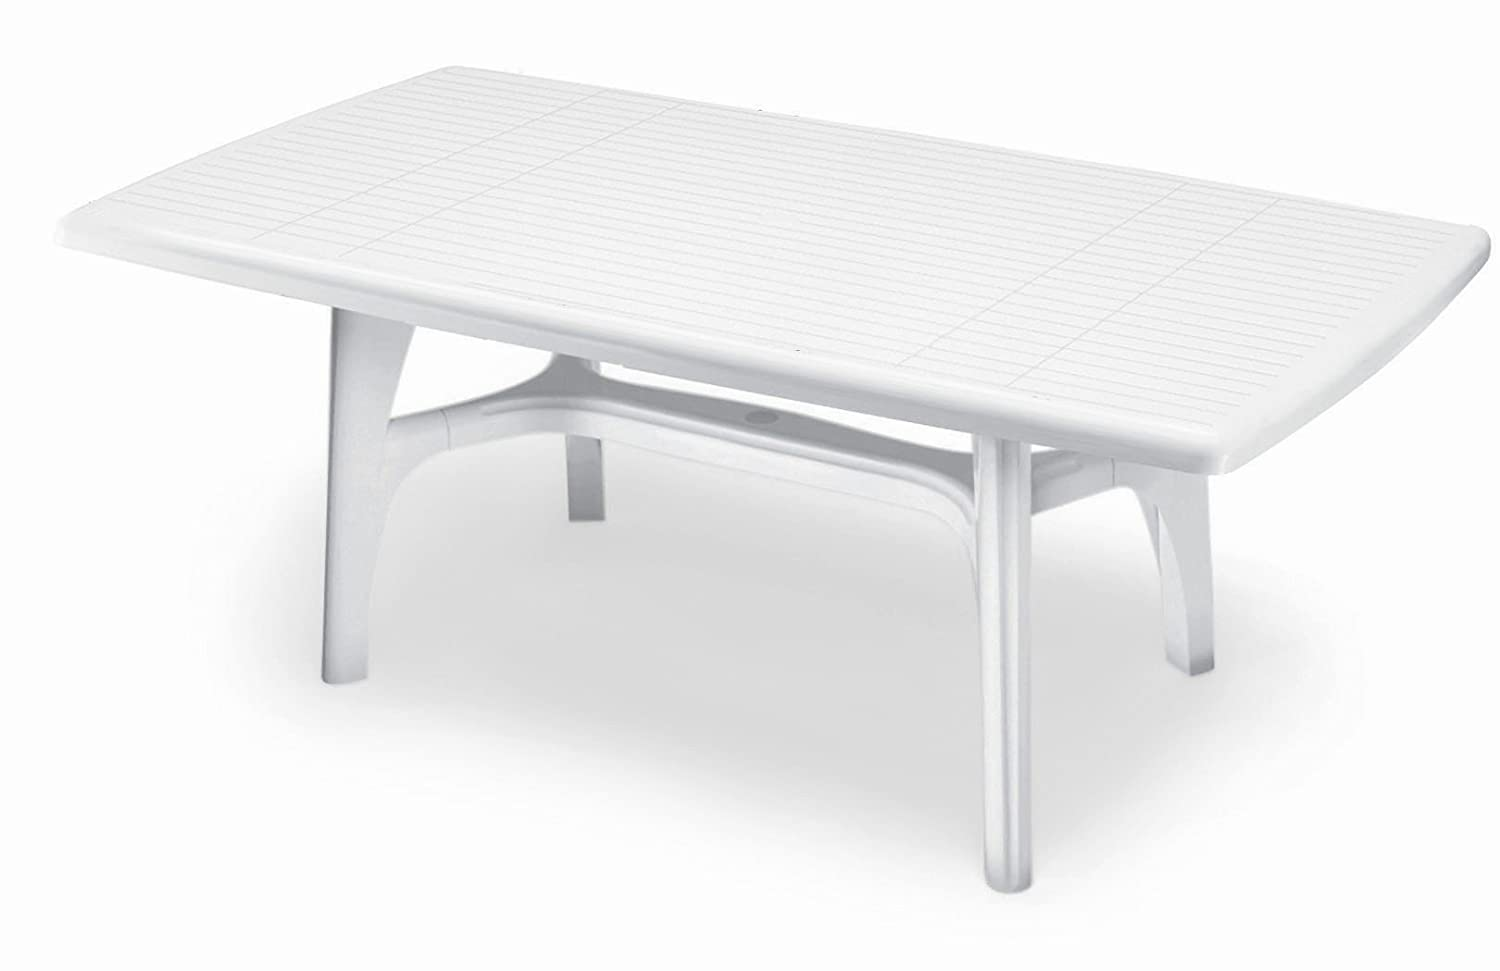 Table President 1800 White Scab B2_0362664